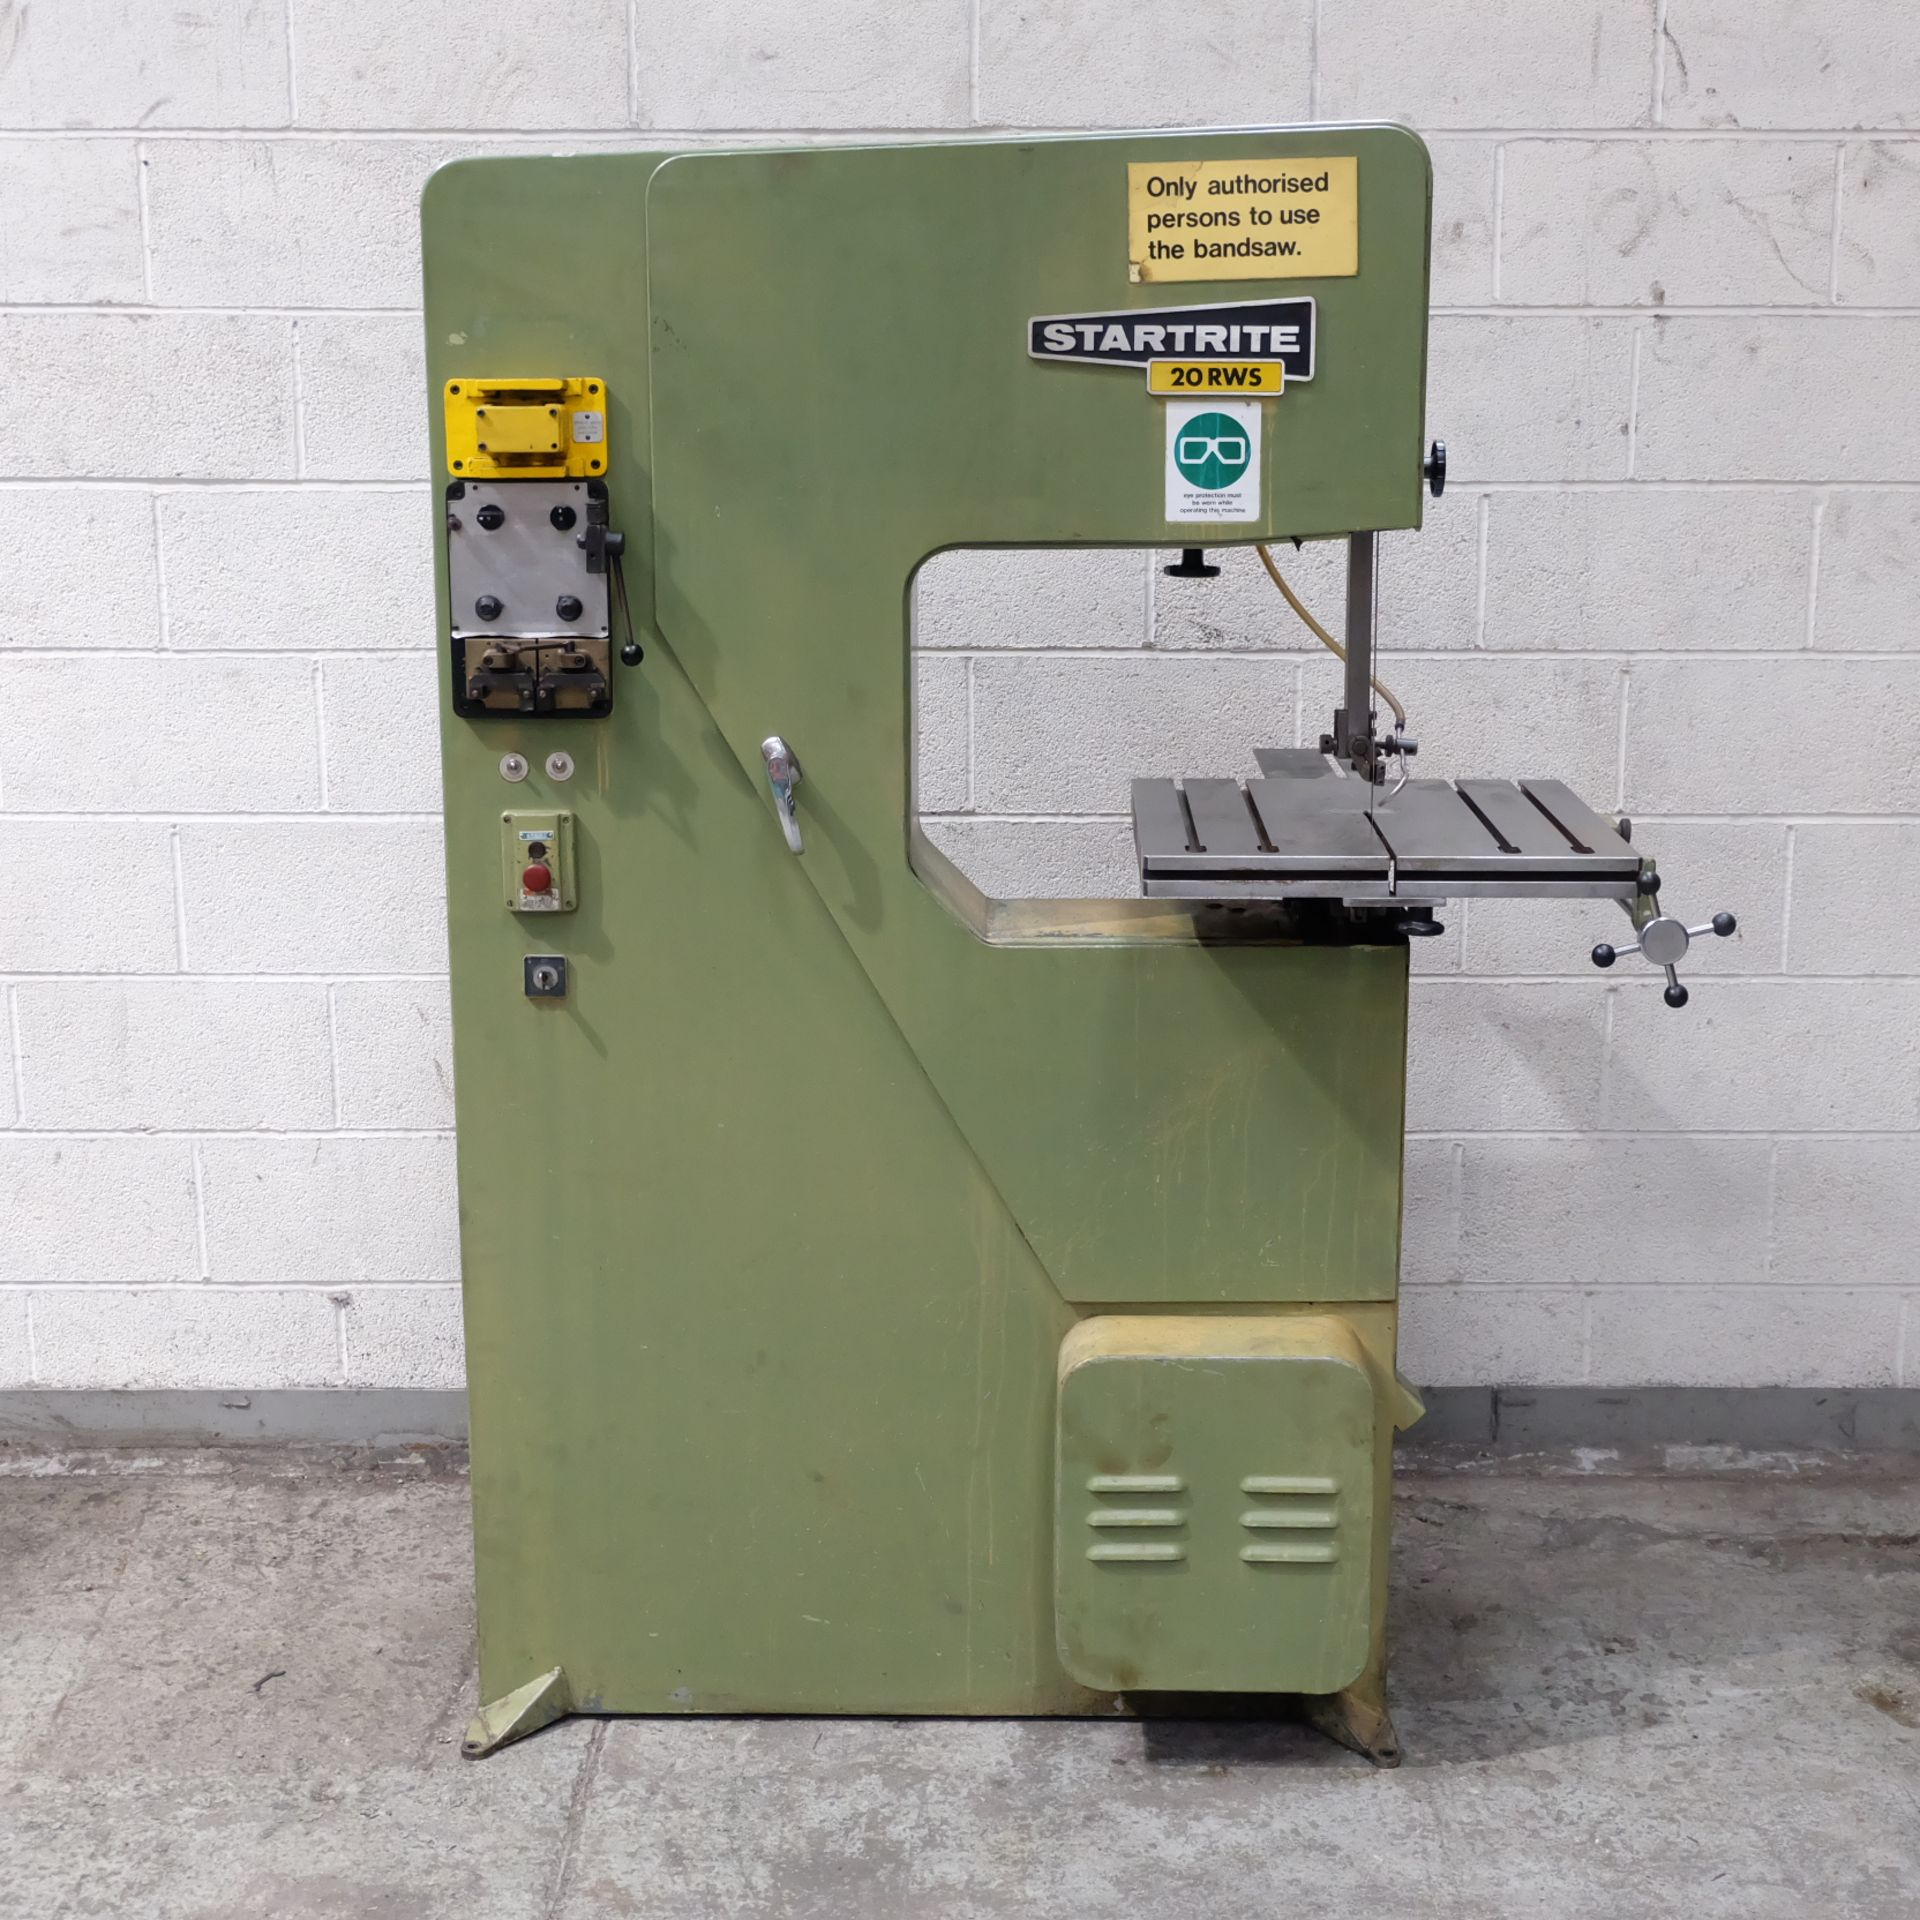 Lot 22 - A Startrite 20 RWS Vertical Bandsaw, Table Size 20